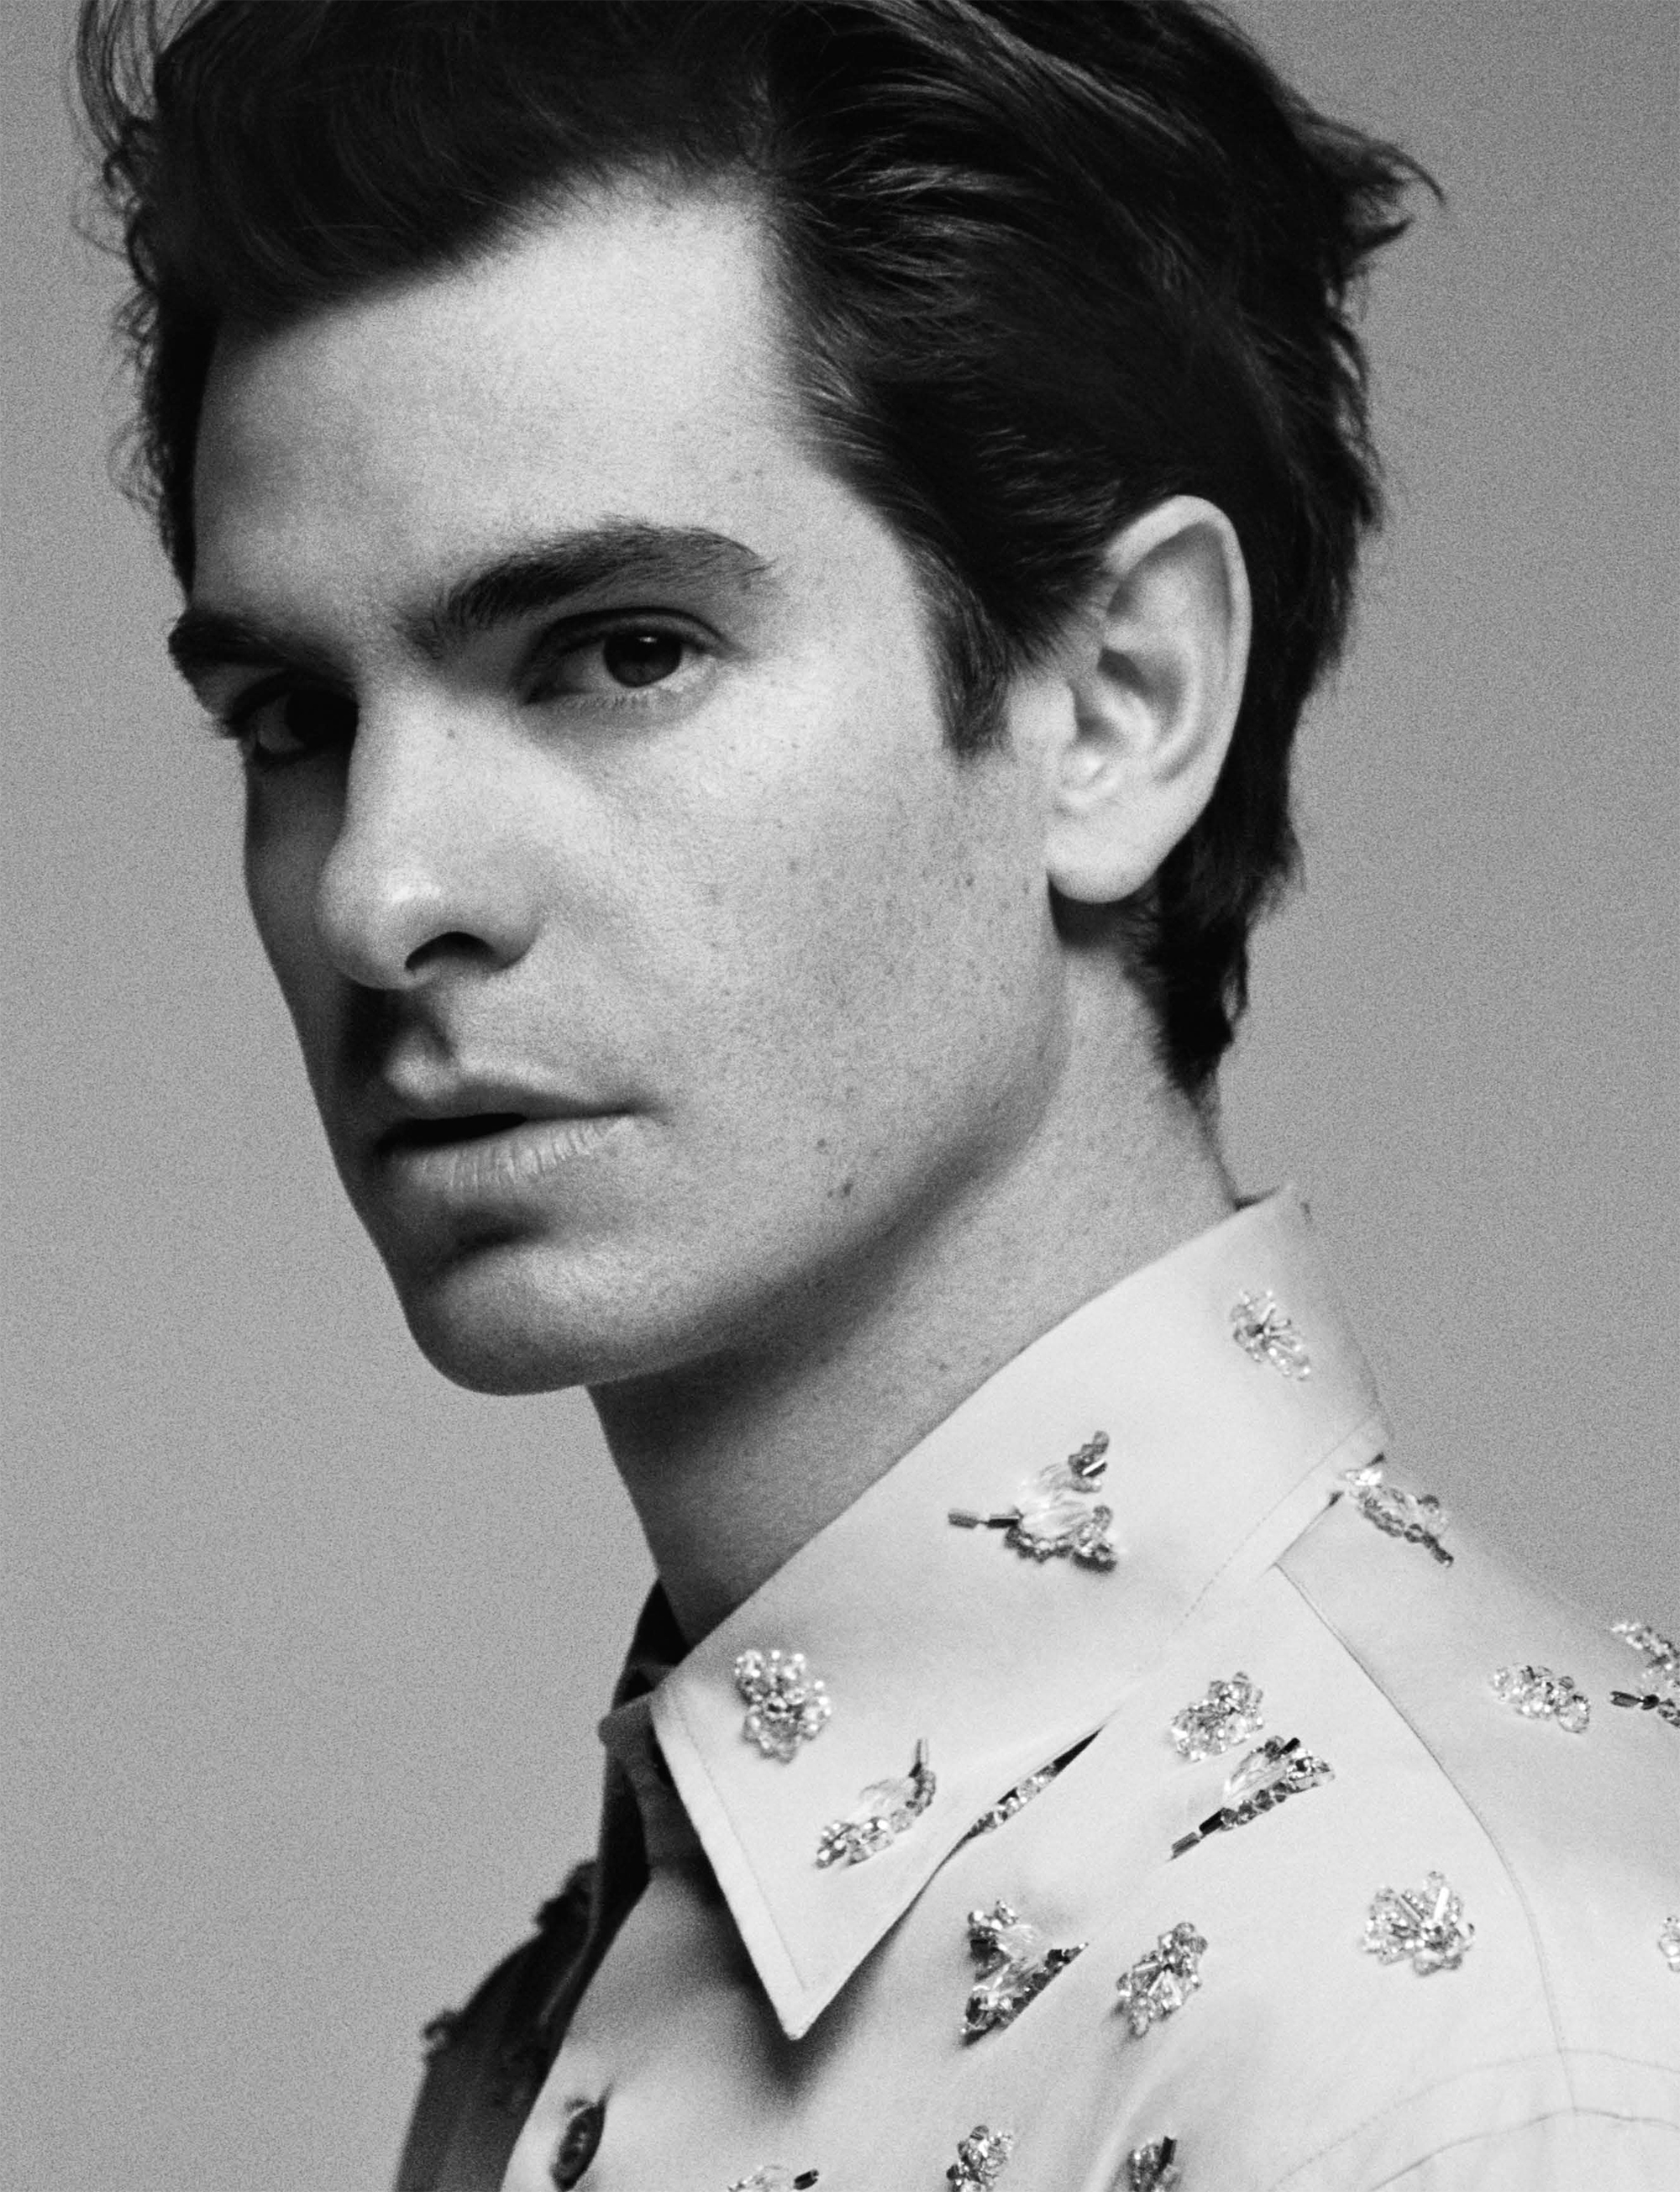 Andrew Garfield, actor